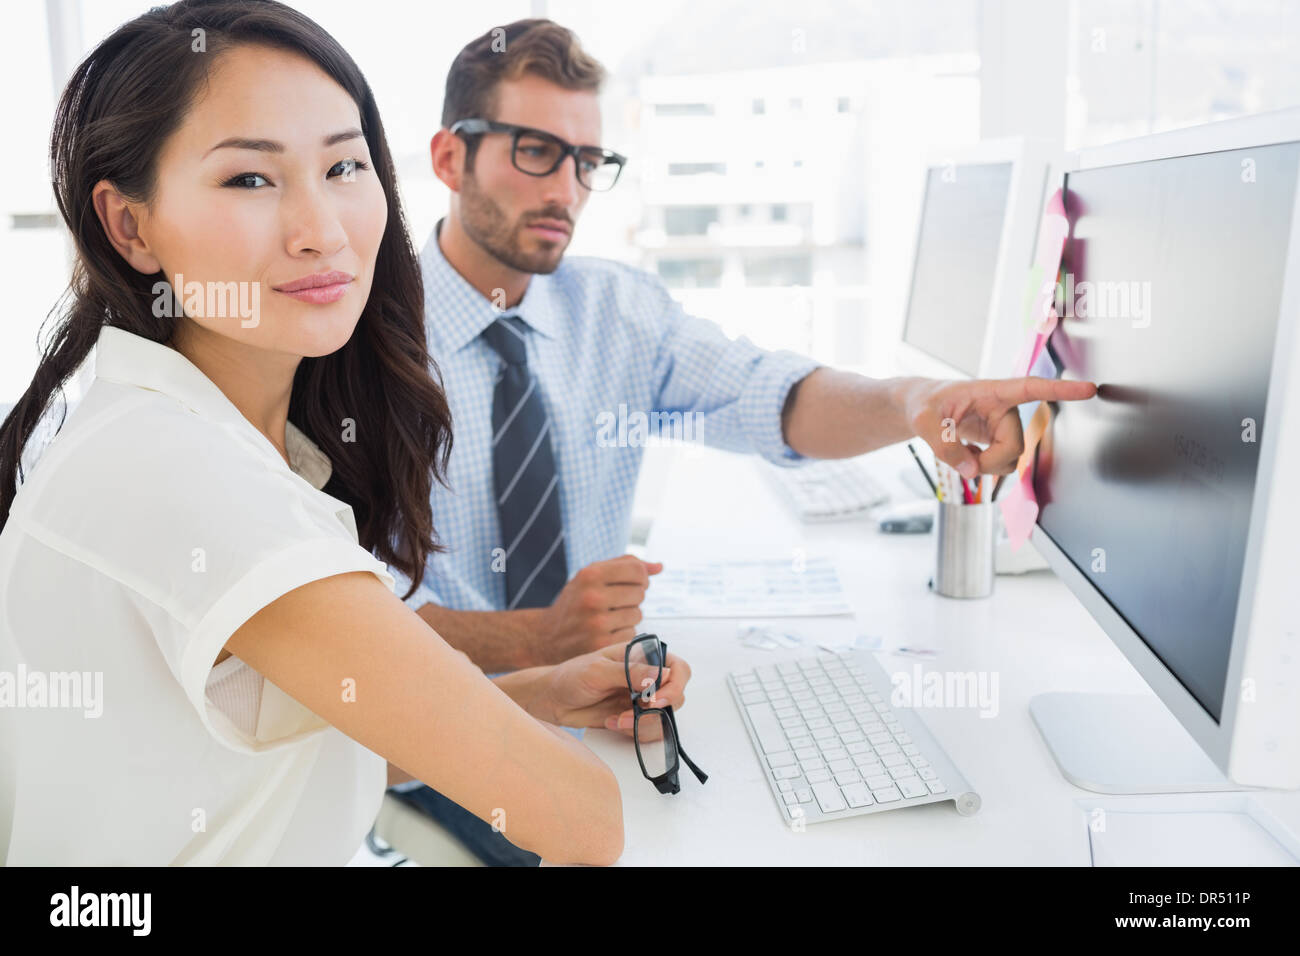 Side view of casual photo editors working on computer - Stock Image